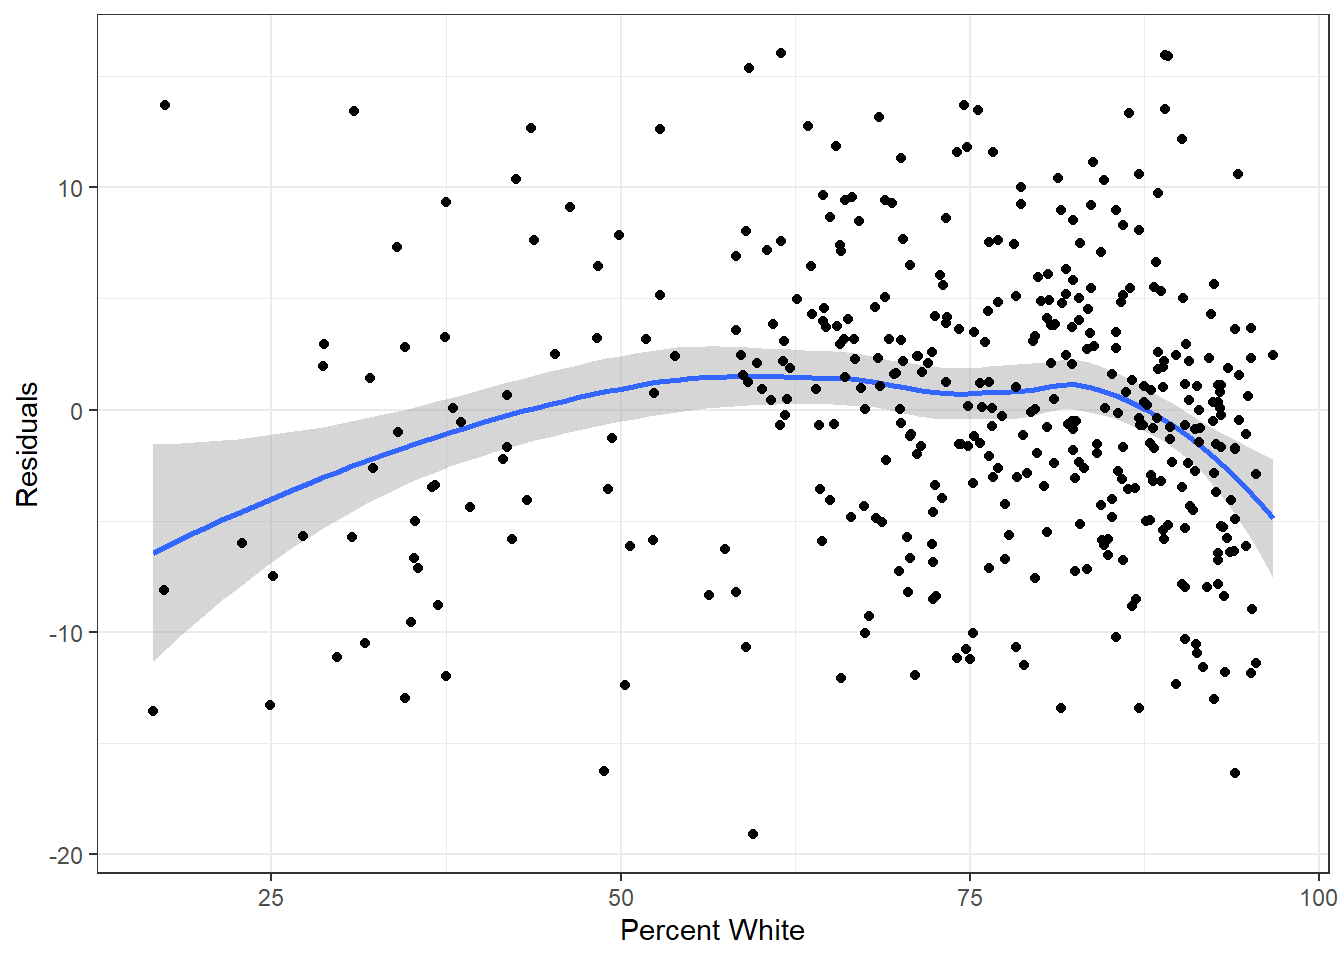 Residuals by predictor plot